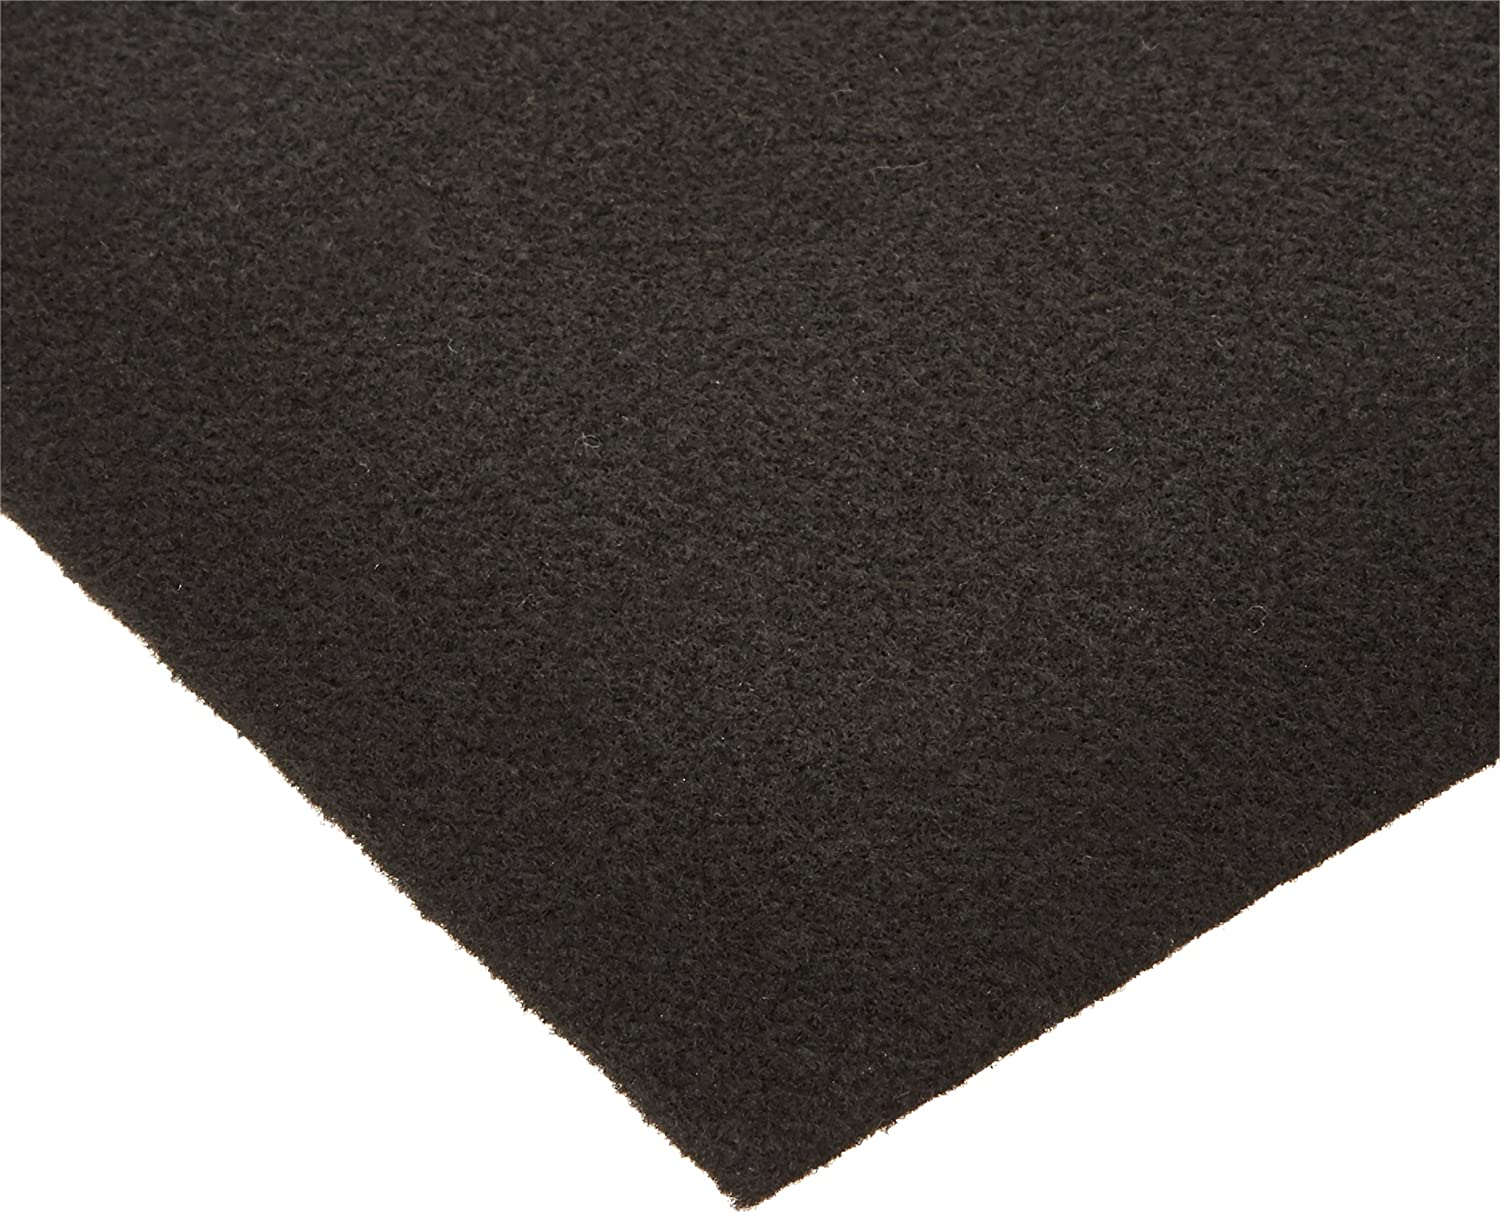 Kunin Rainbow Classic Felt 9'X12'-Black 24 per pack Notions - In Network 912-937